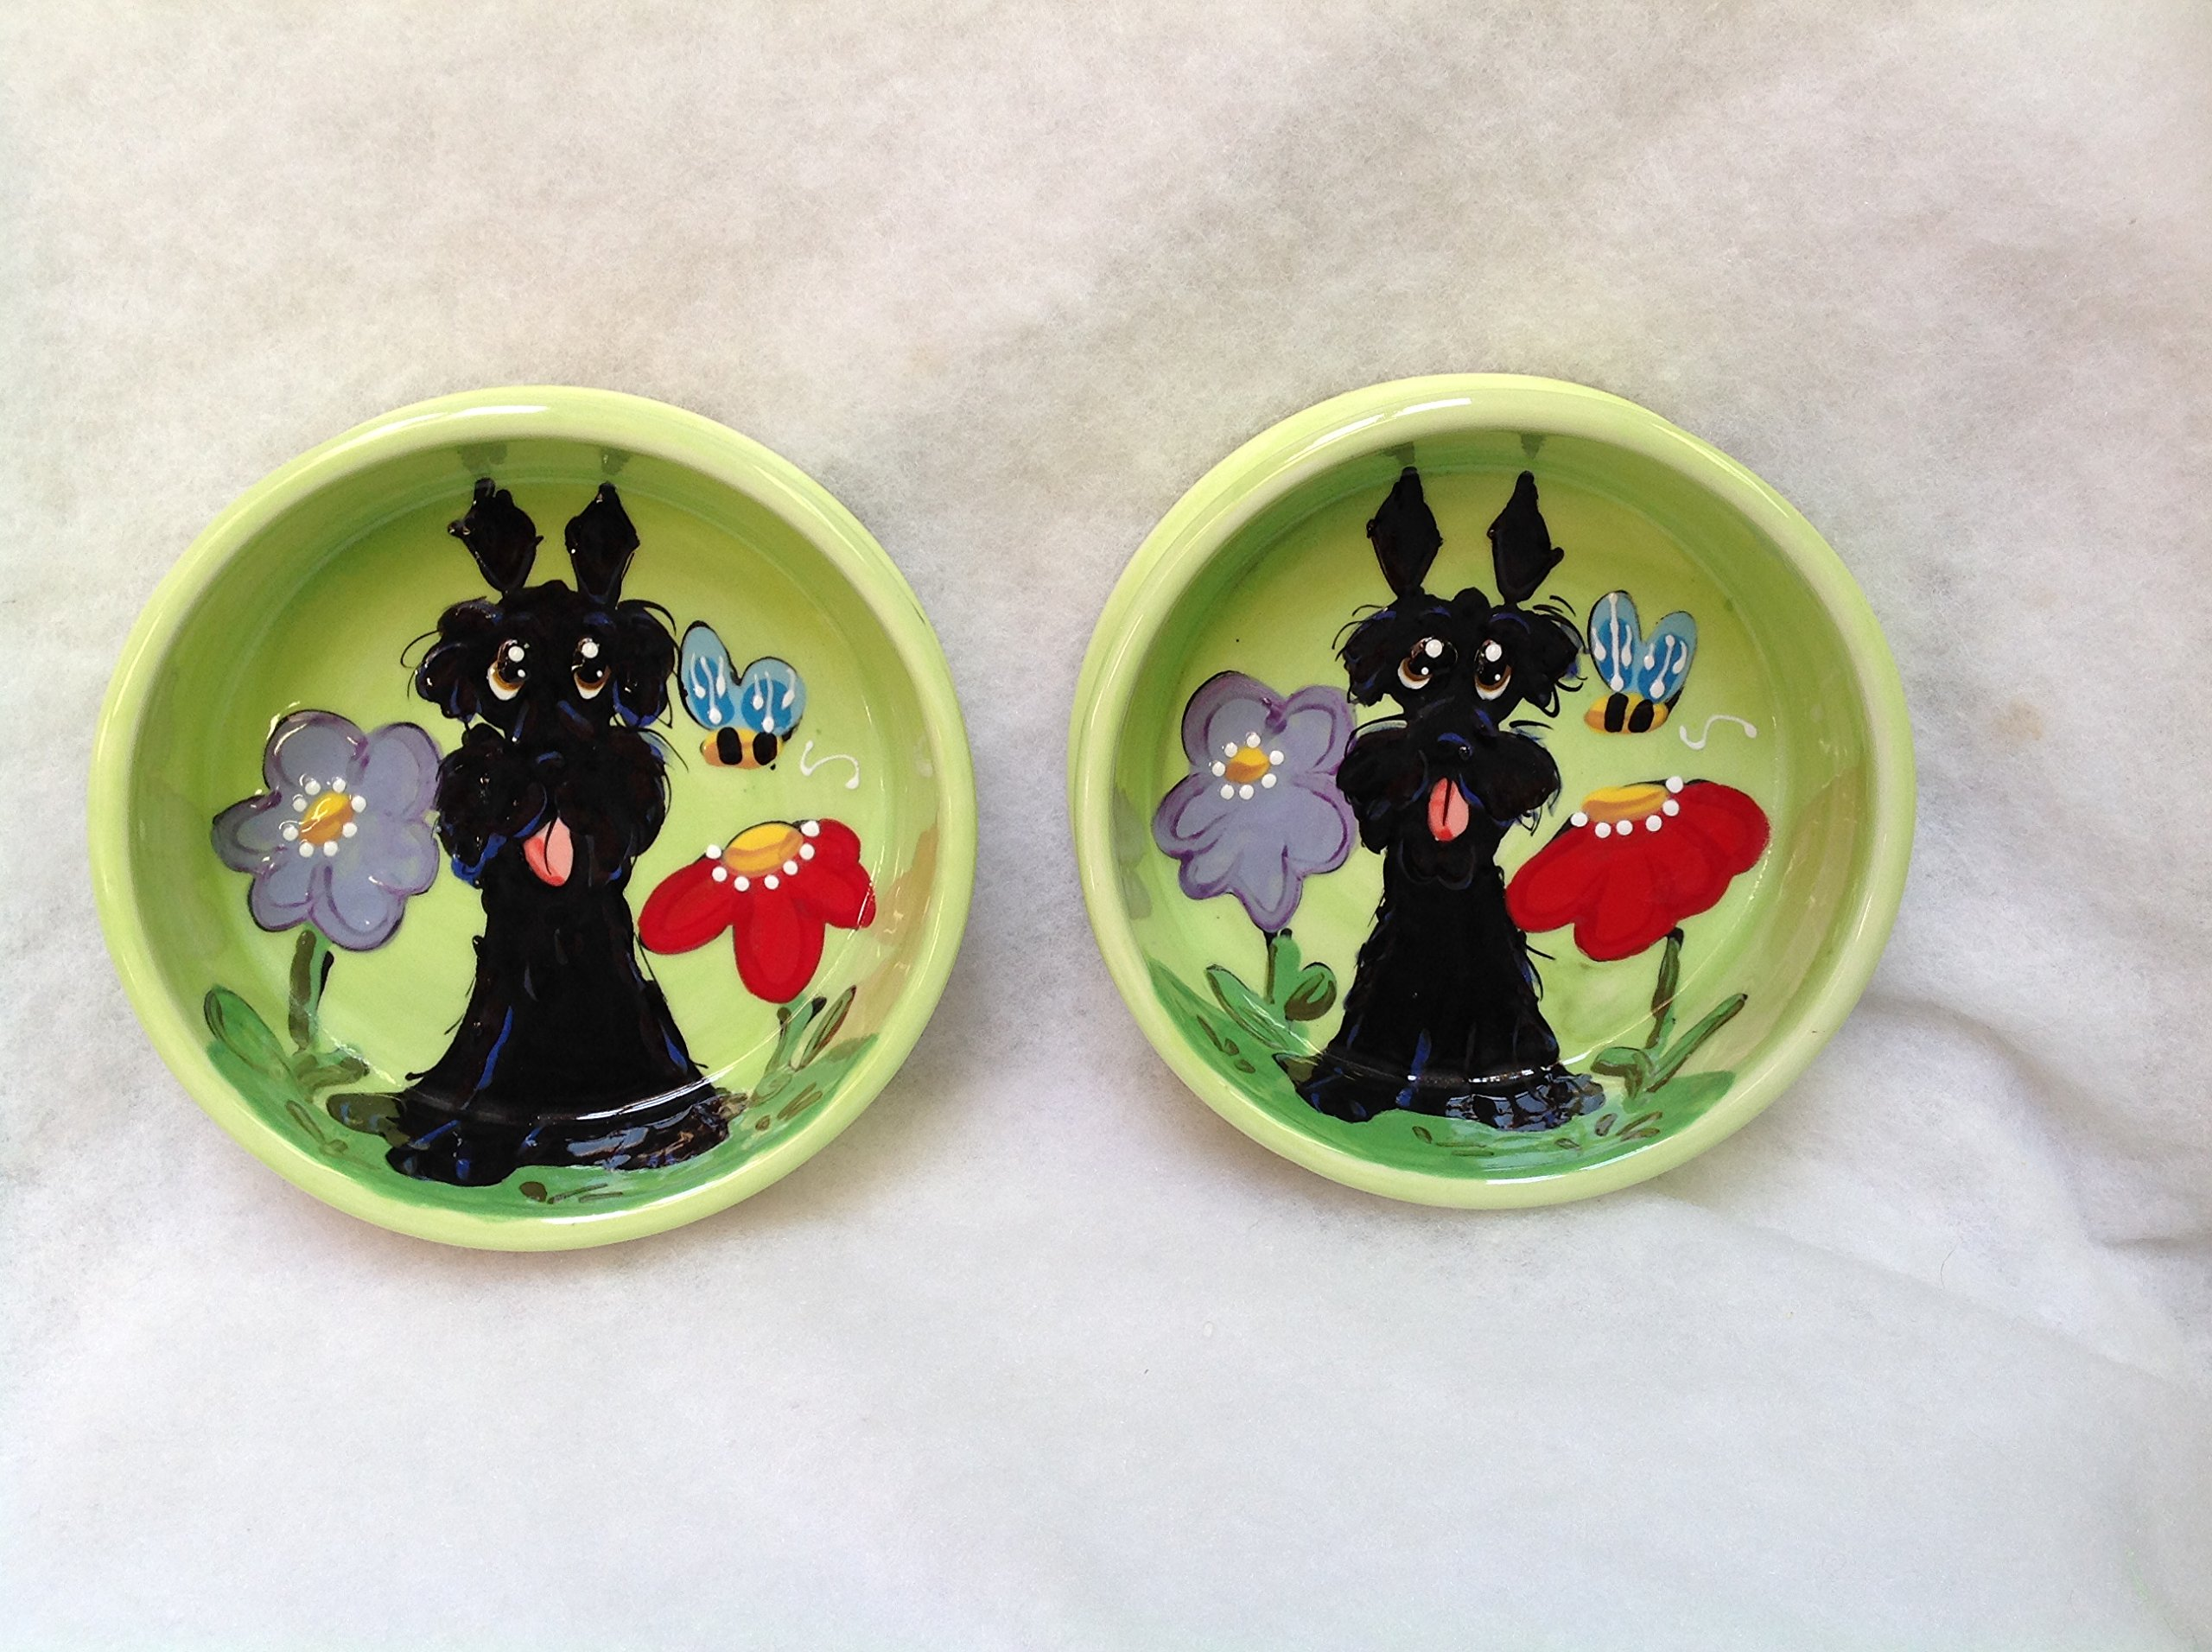 Scottish Terrier 8'' and 6'' Pet Bowls for Food and Water. Personalized at no Charge. Signed by Artist, Debby Carman.